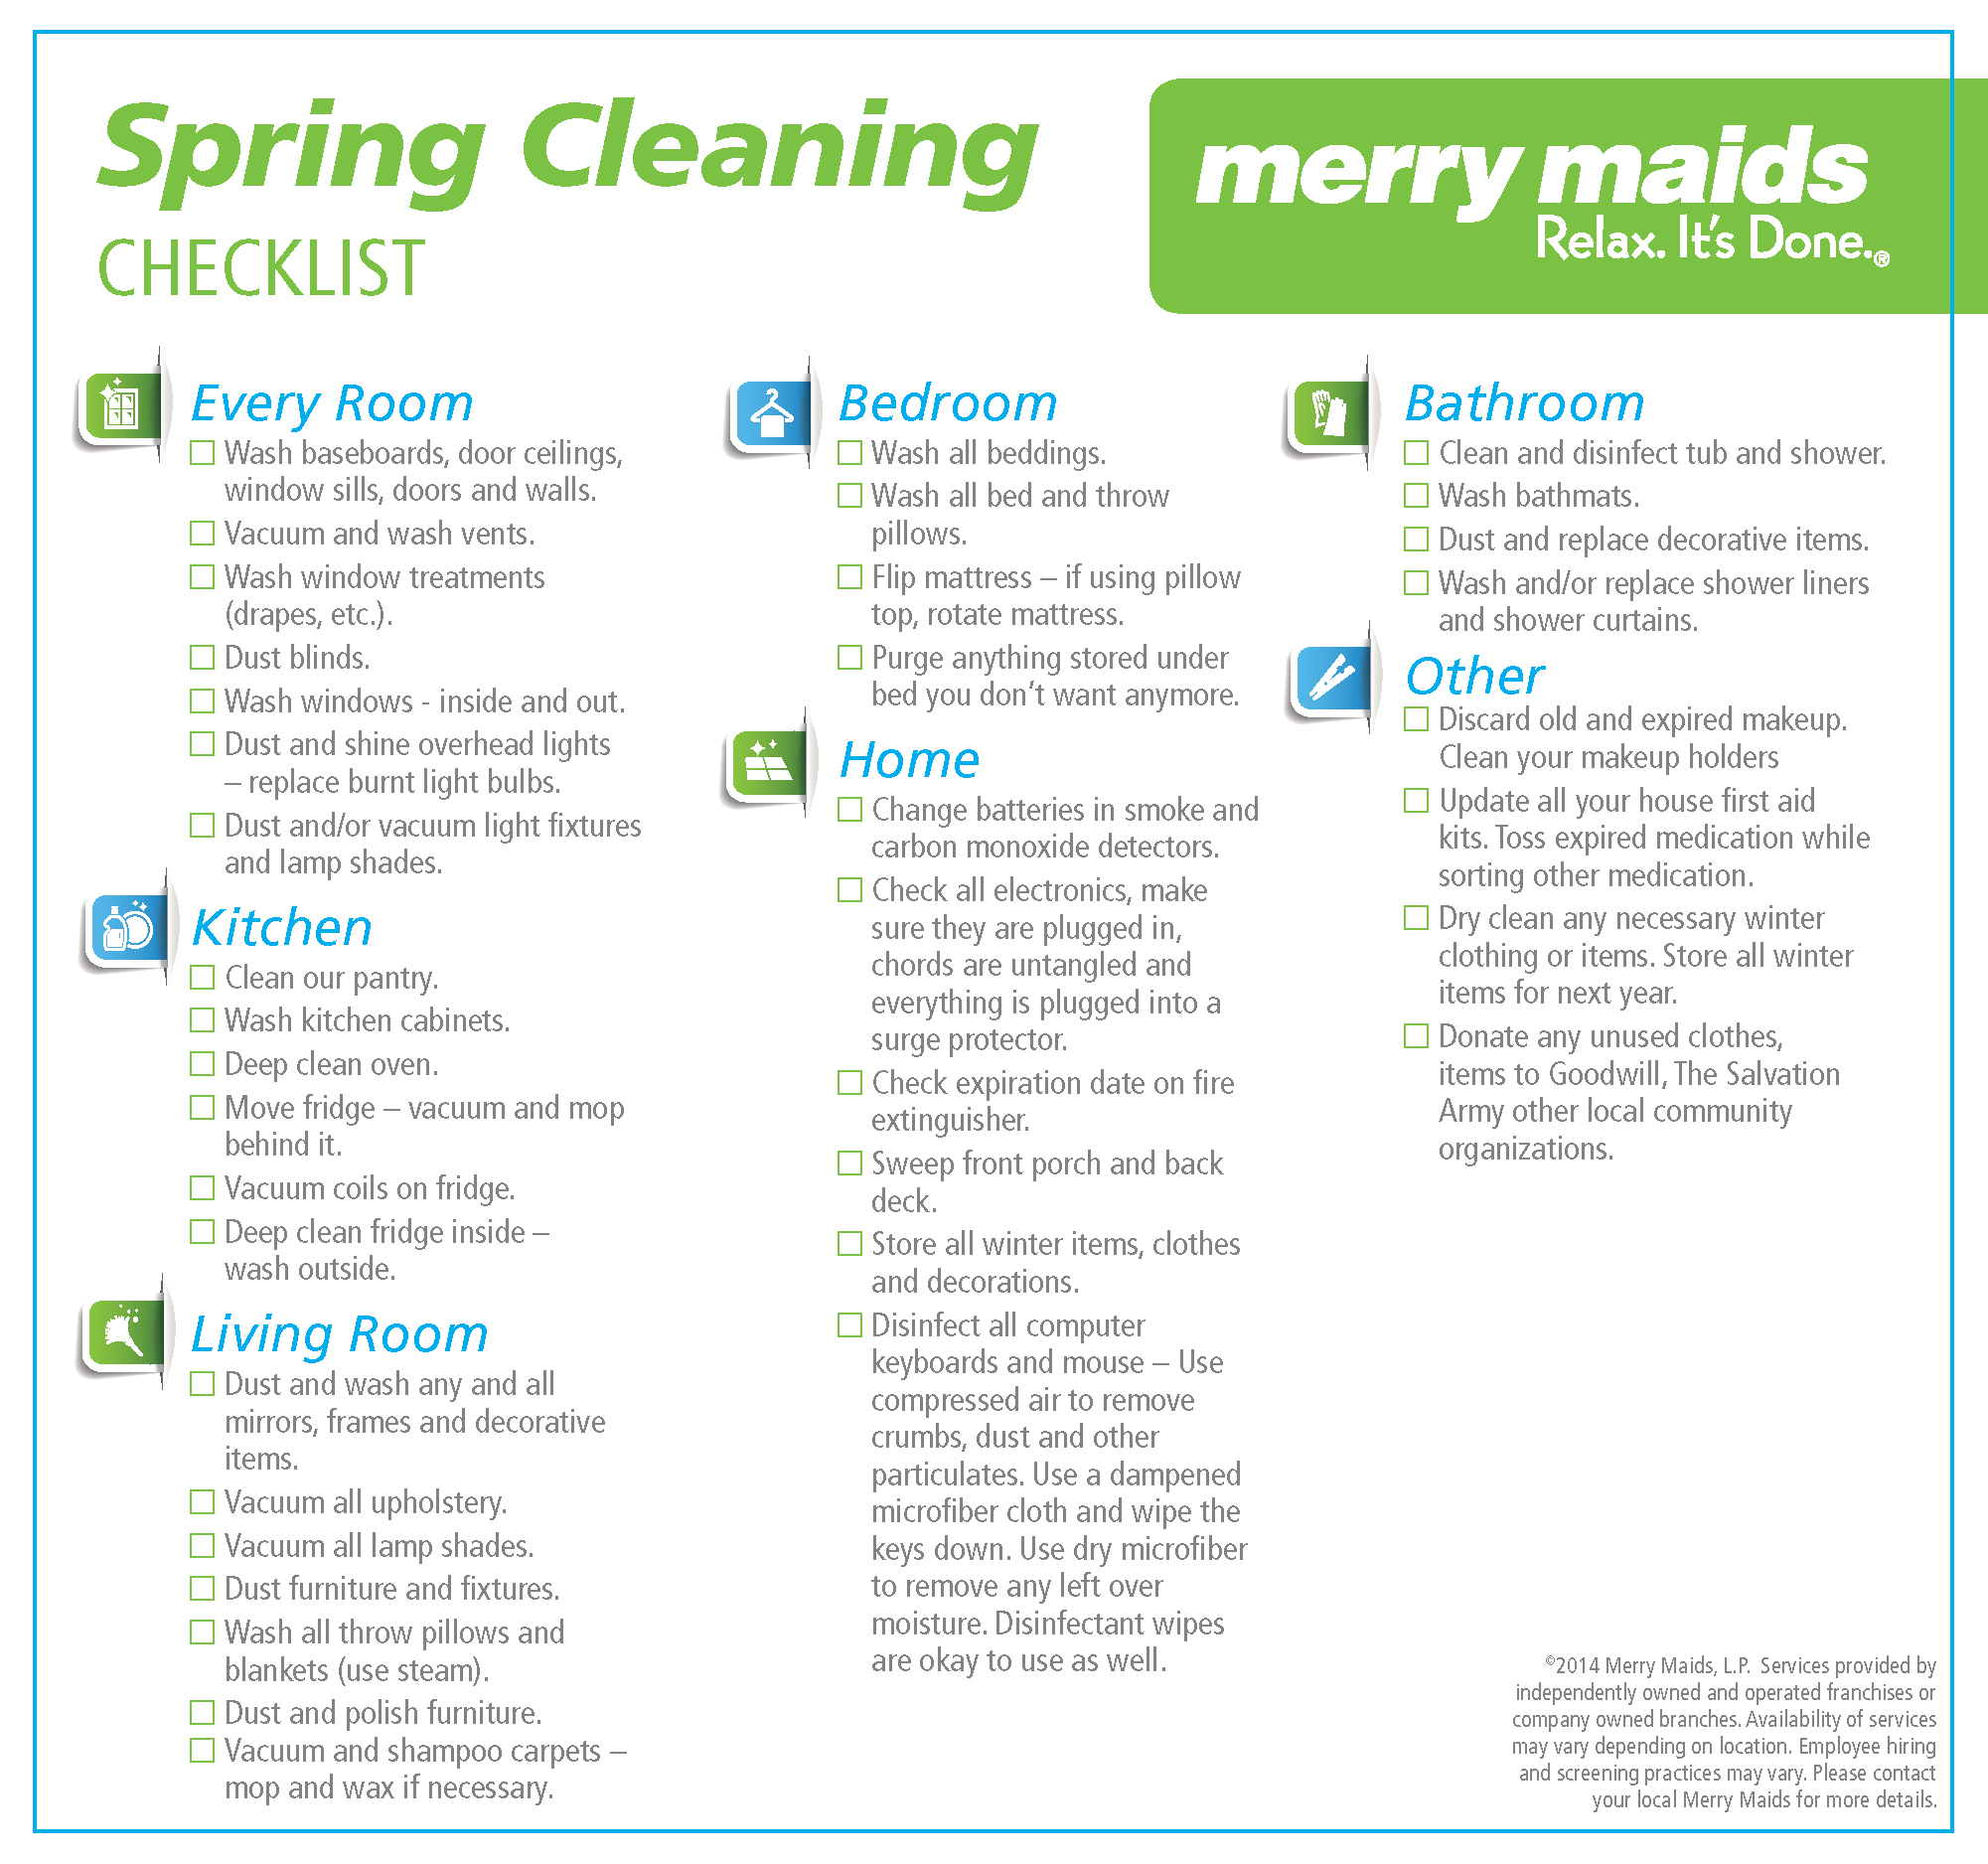 New Survey Gets The Inside Dirt On Spring Cleaning